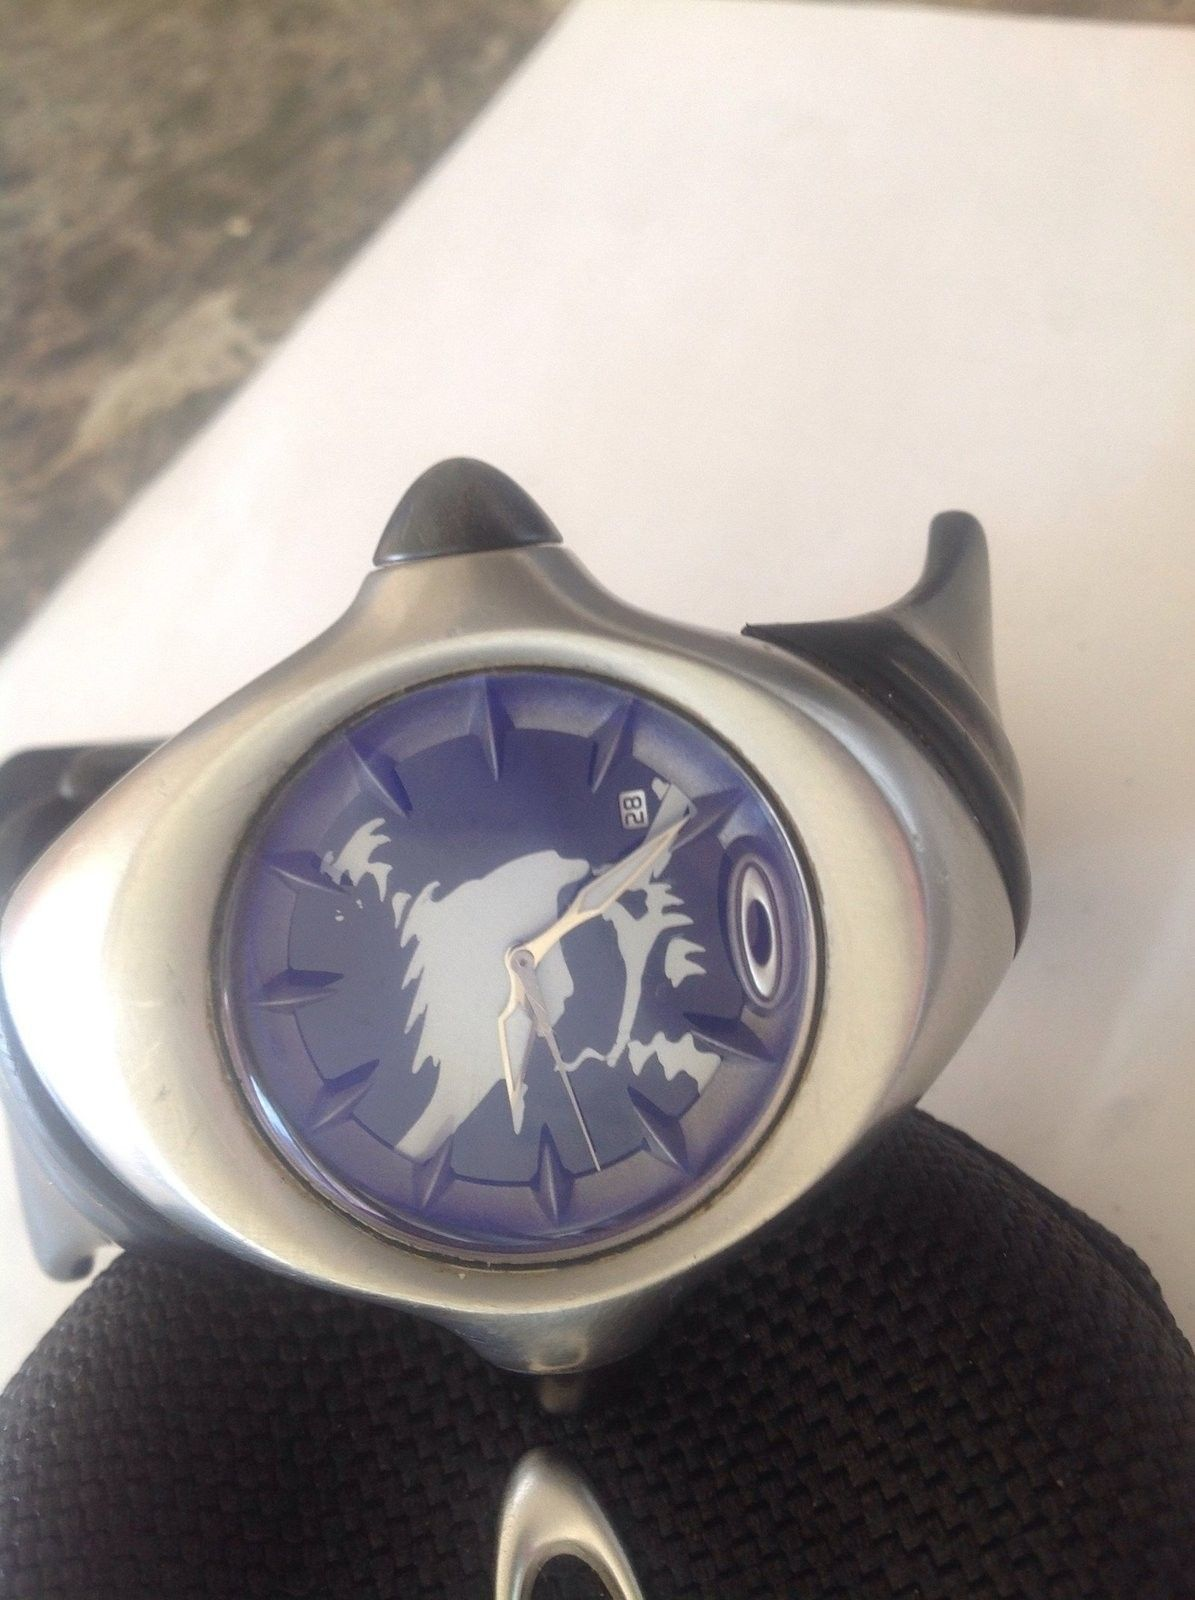 Used Oakley Crush Stainless Skull watch - image.jpg